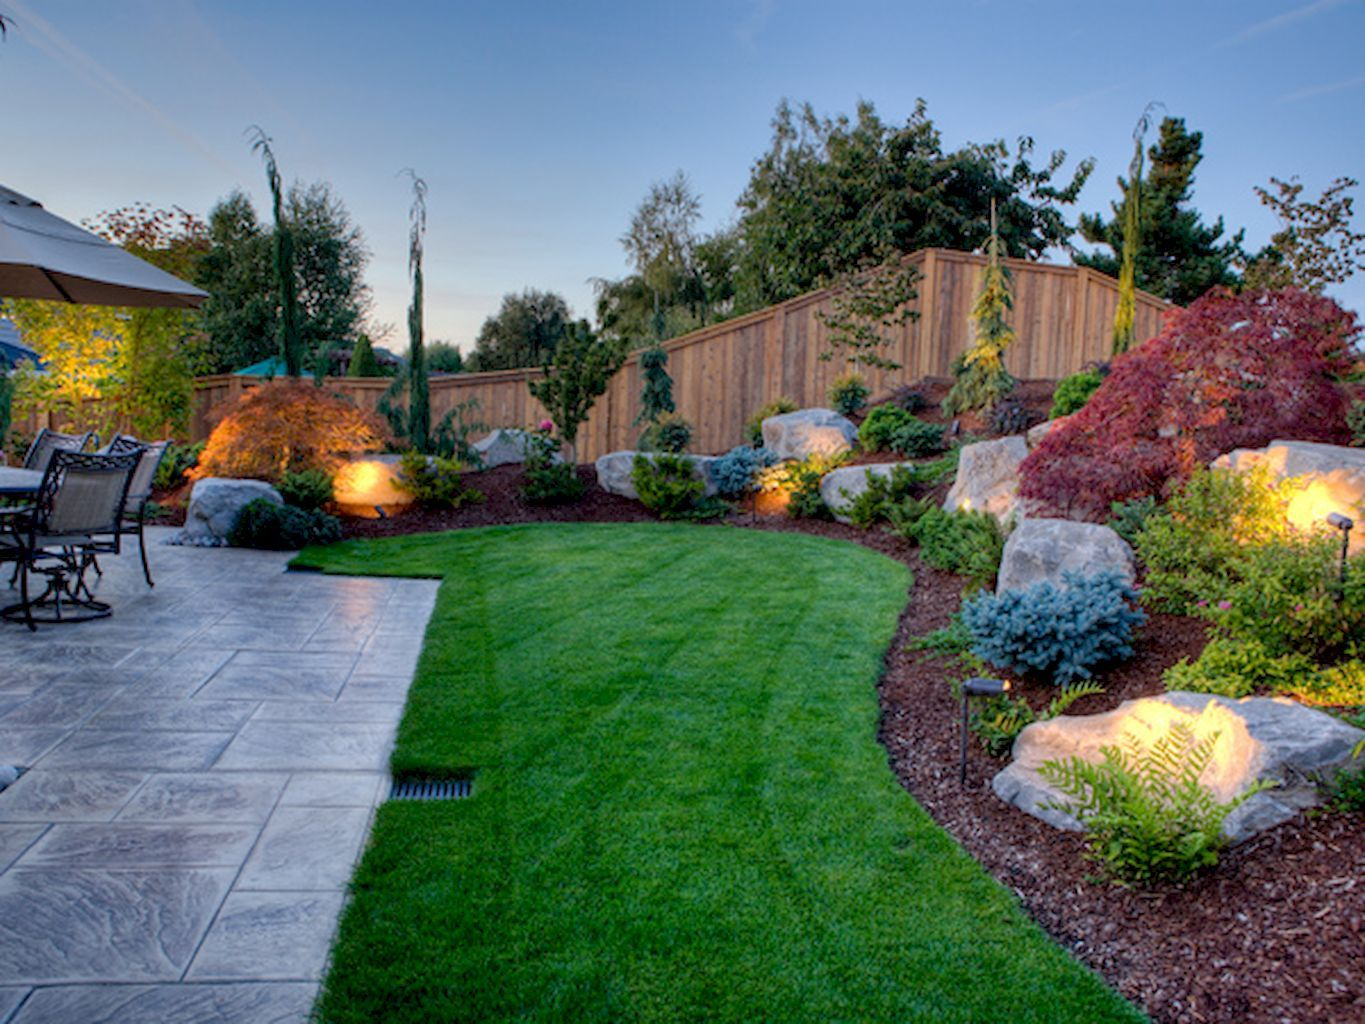 40 beautiful front yard landscaping ideas yard for Small backyard garden ideas